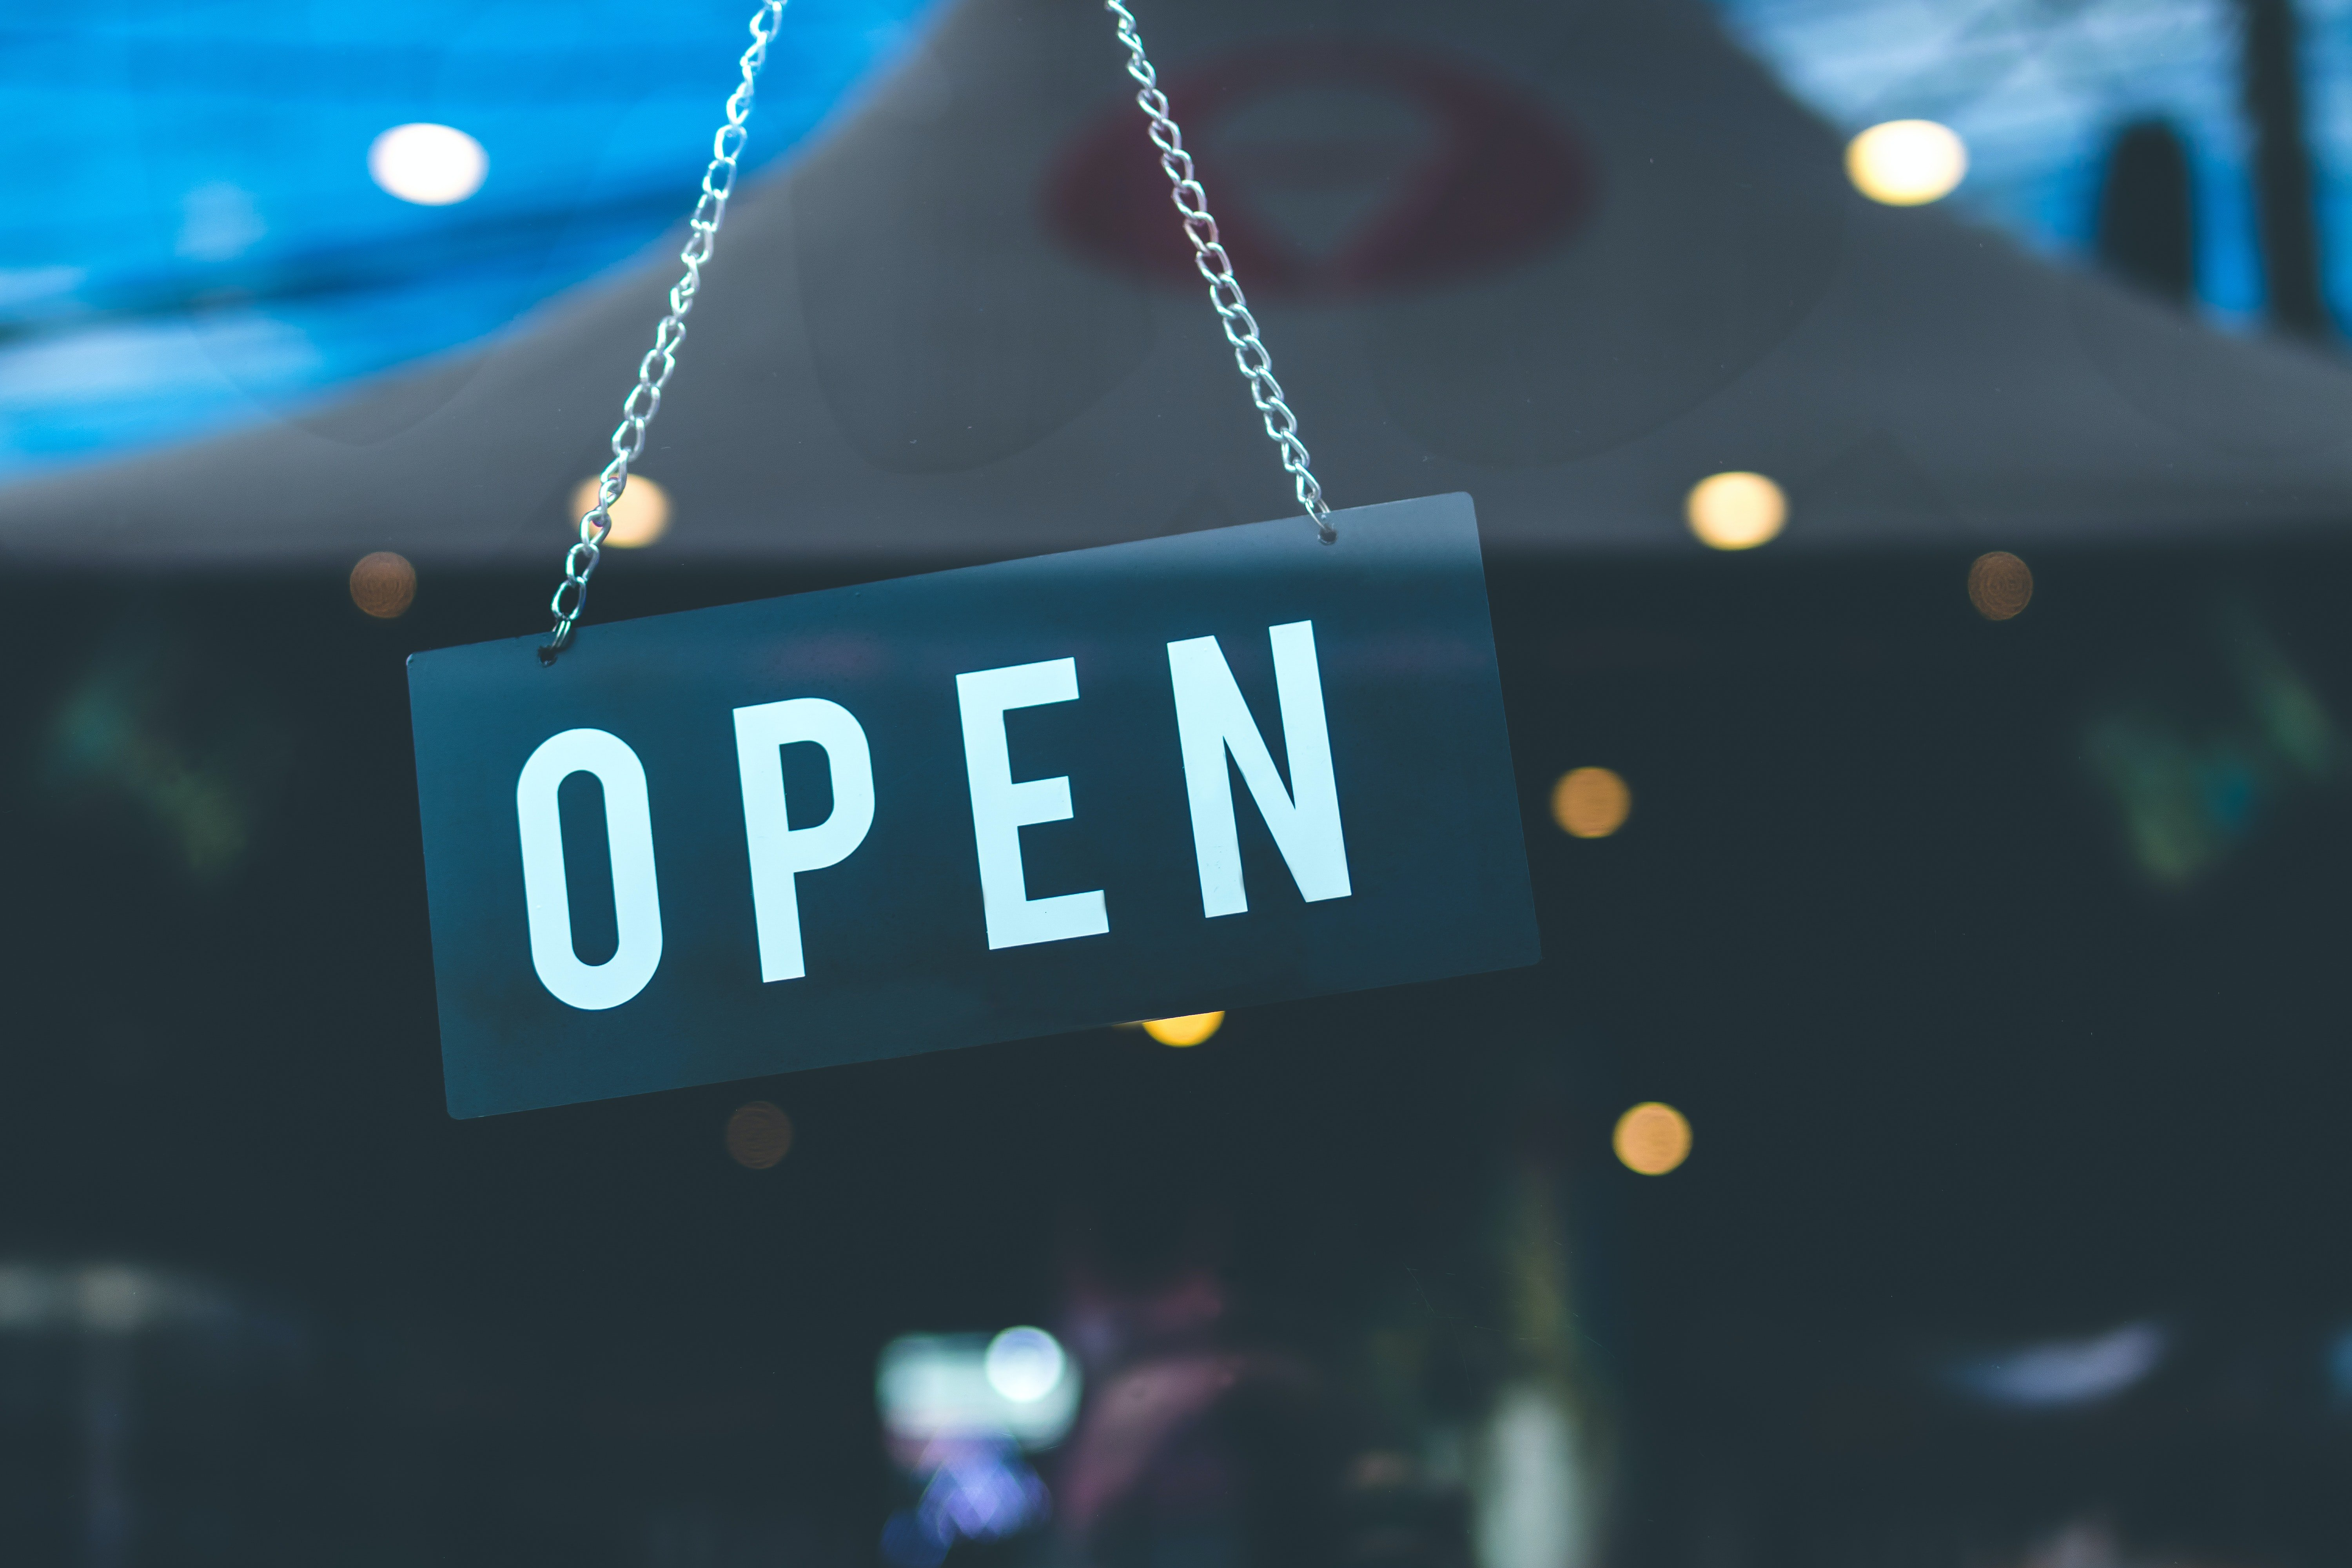 The newly opened store soon became the talk of the town.   Photo: Pexels